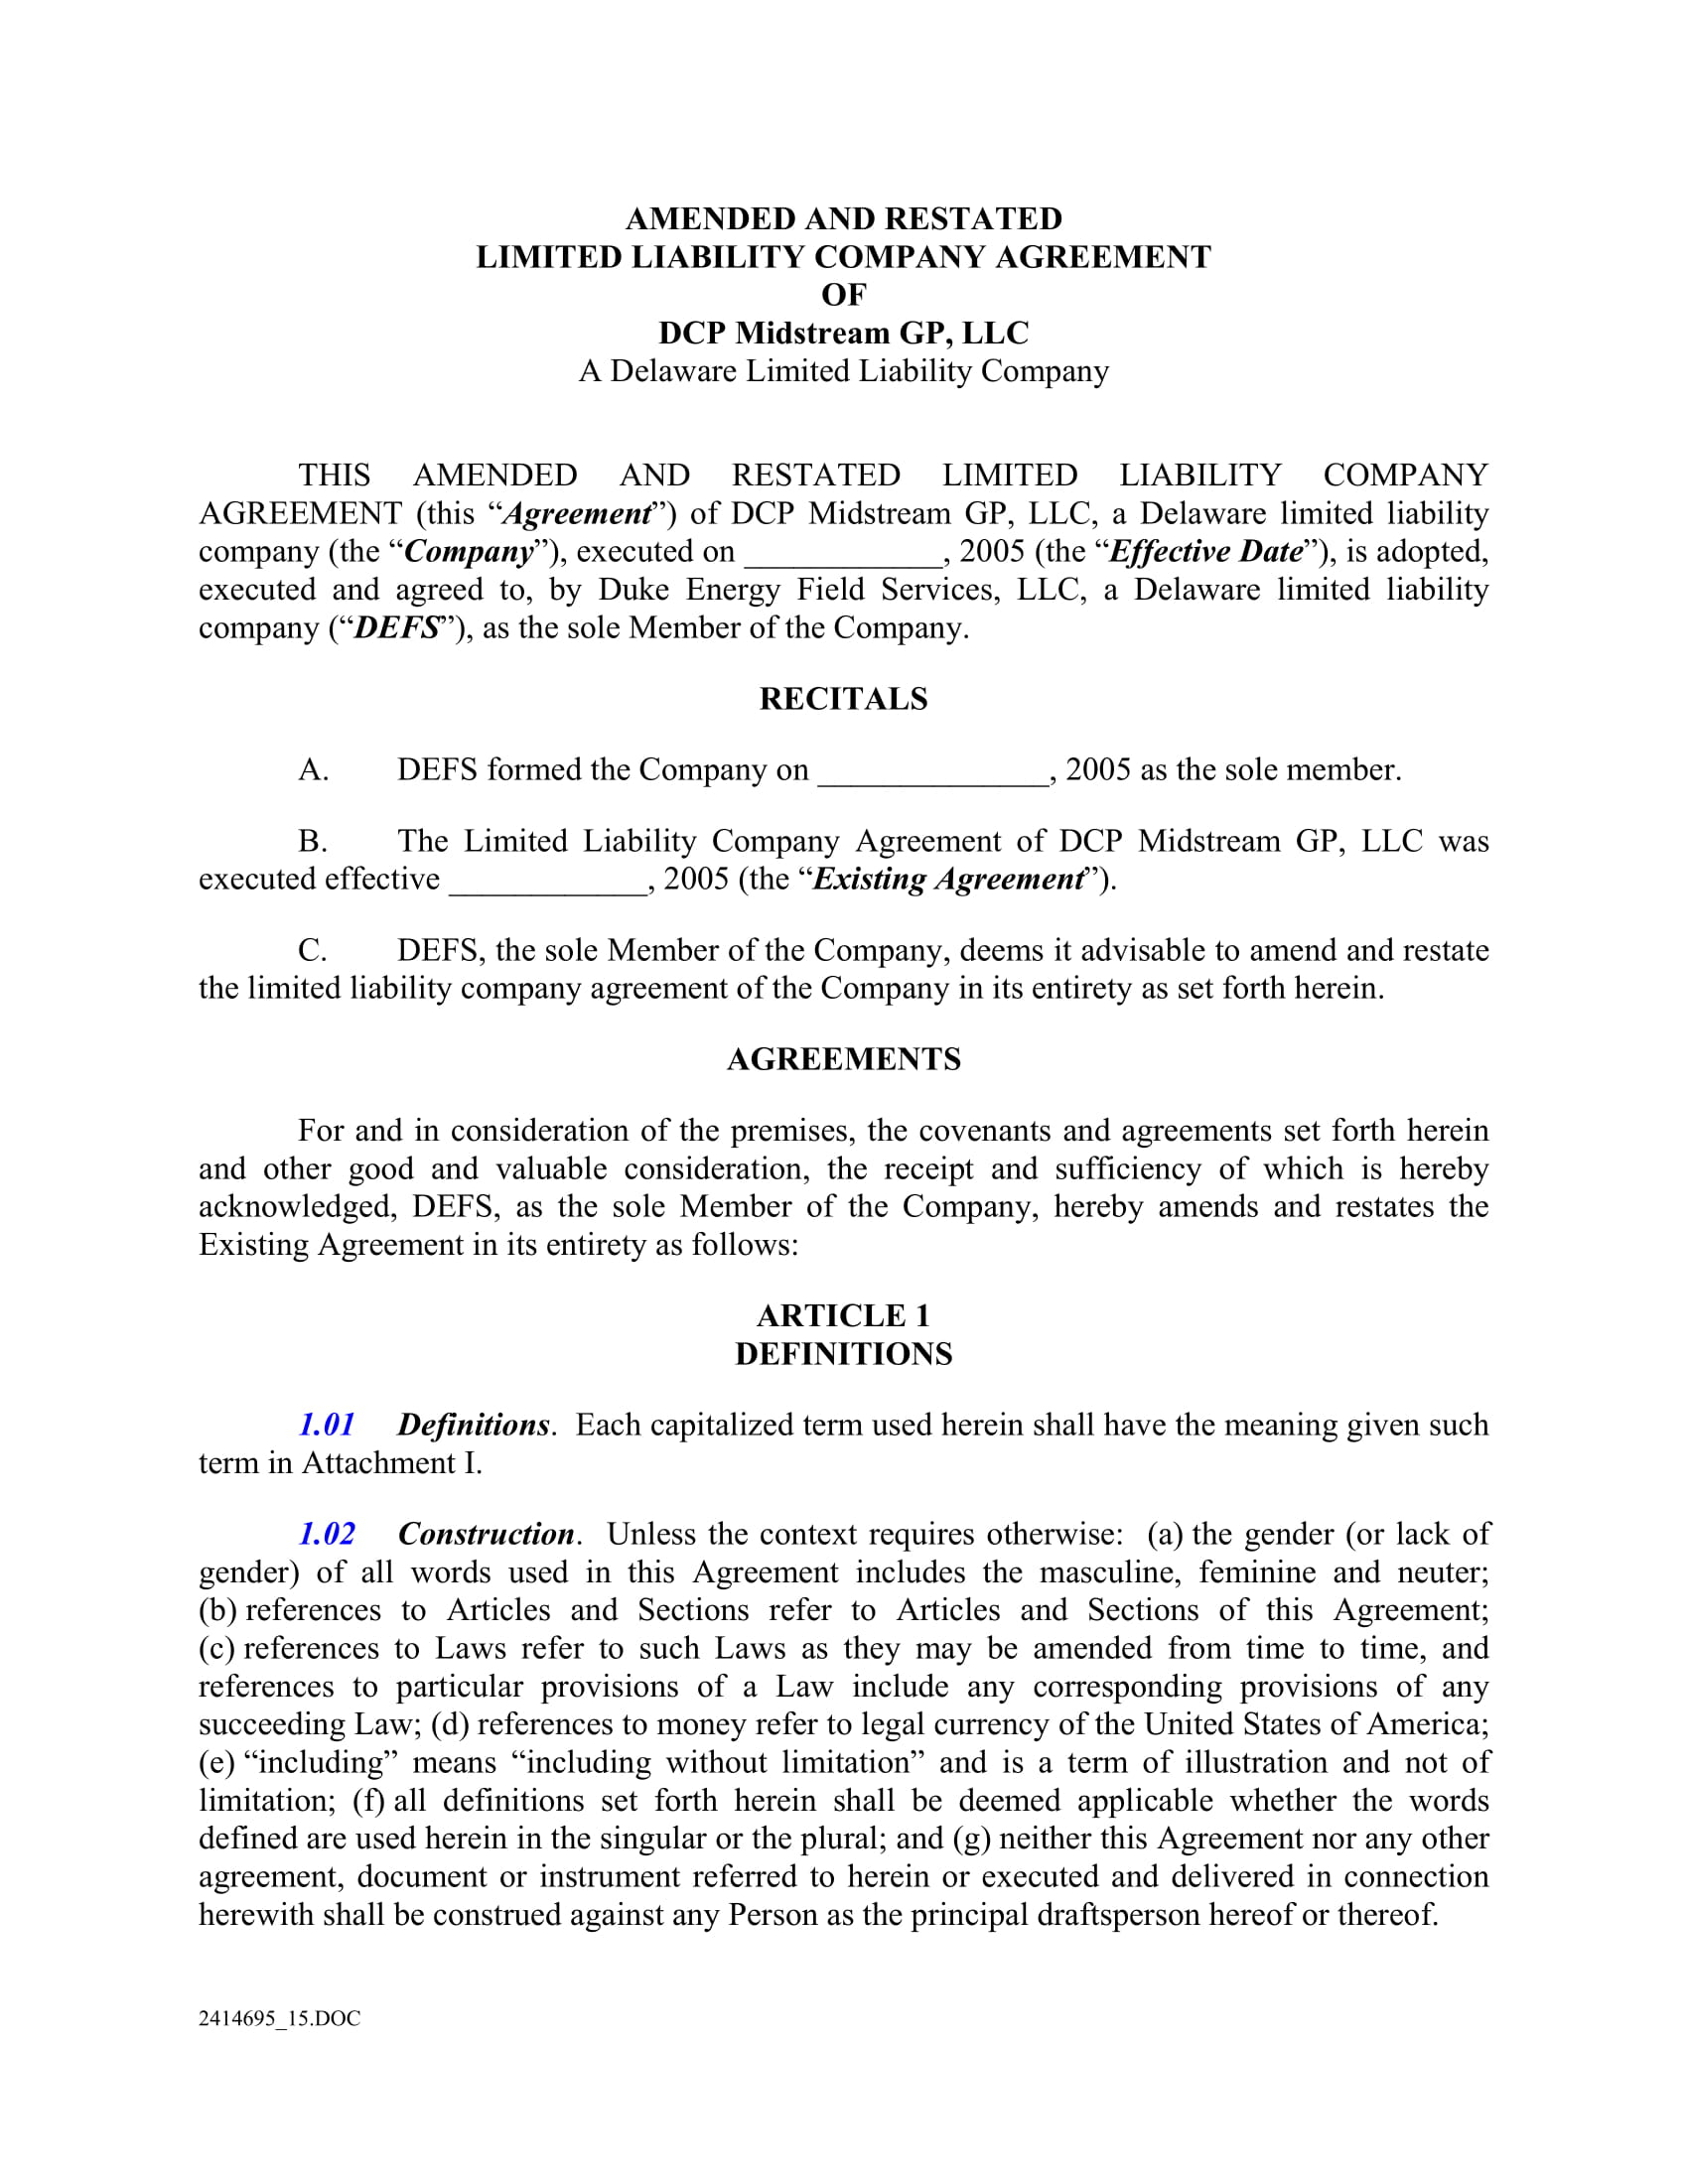 amended limited liability company agreement contract form 04